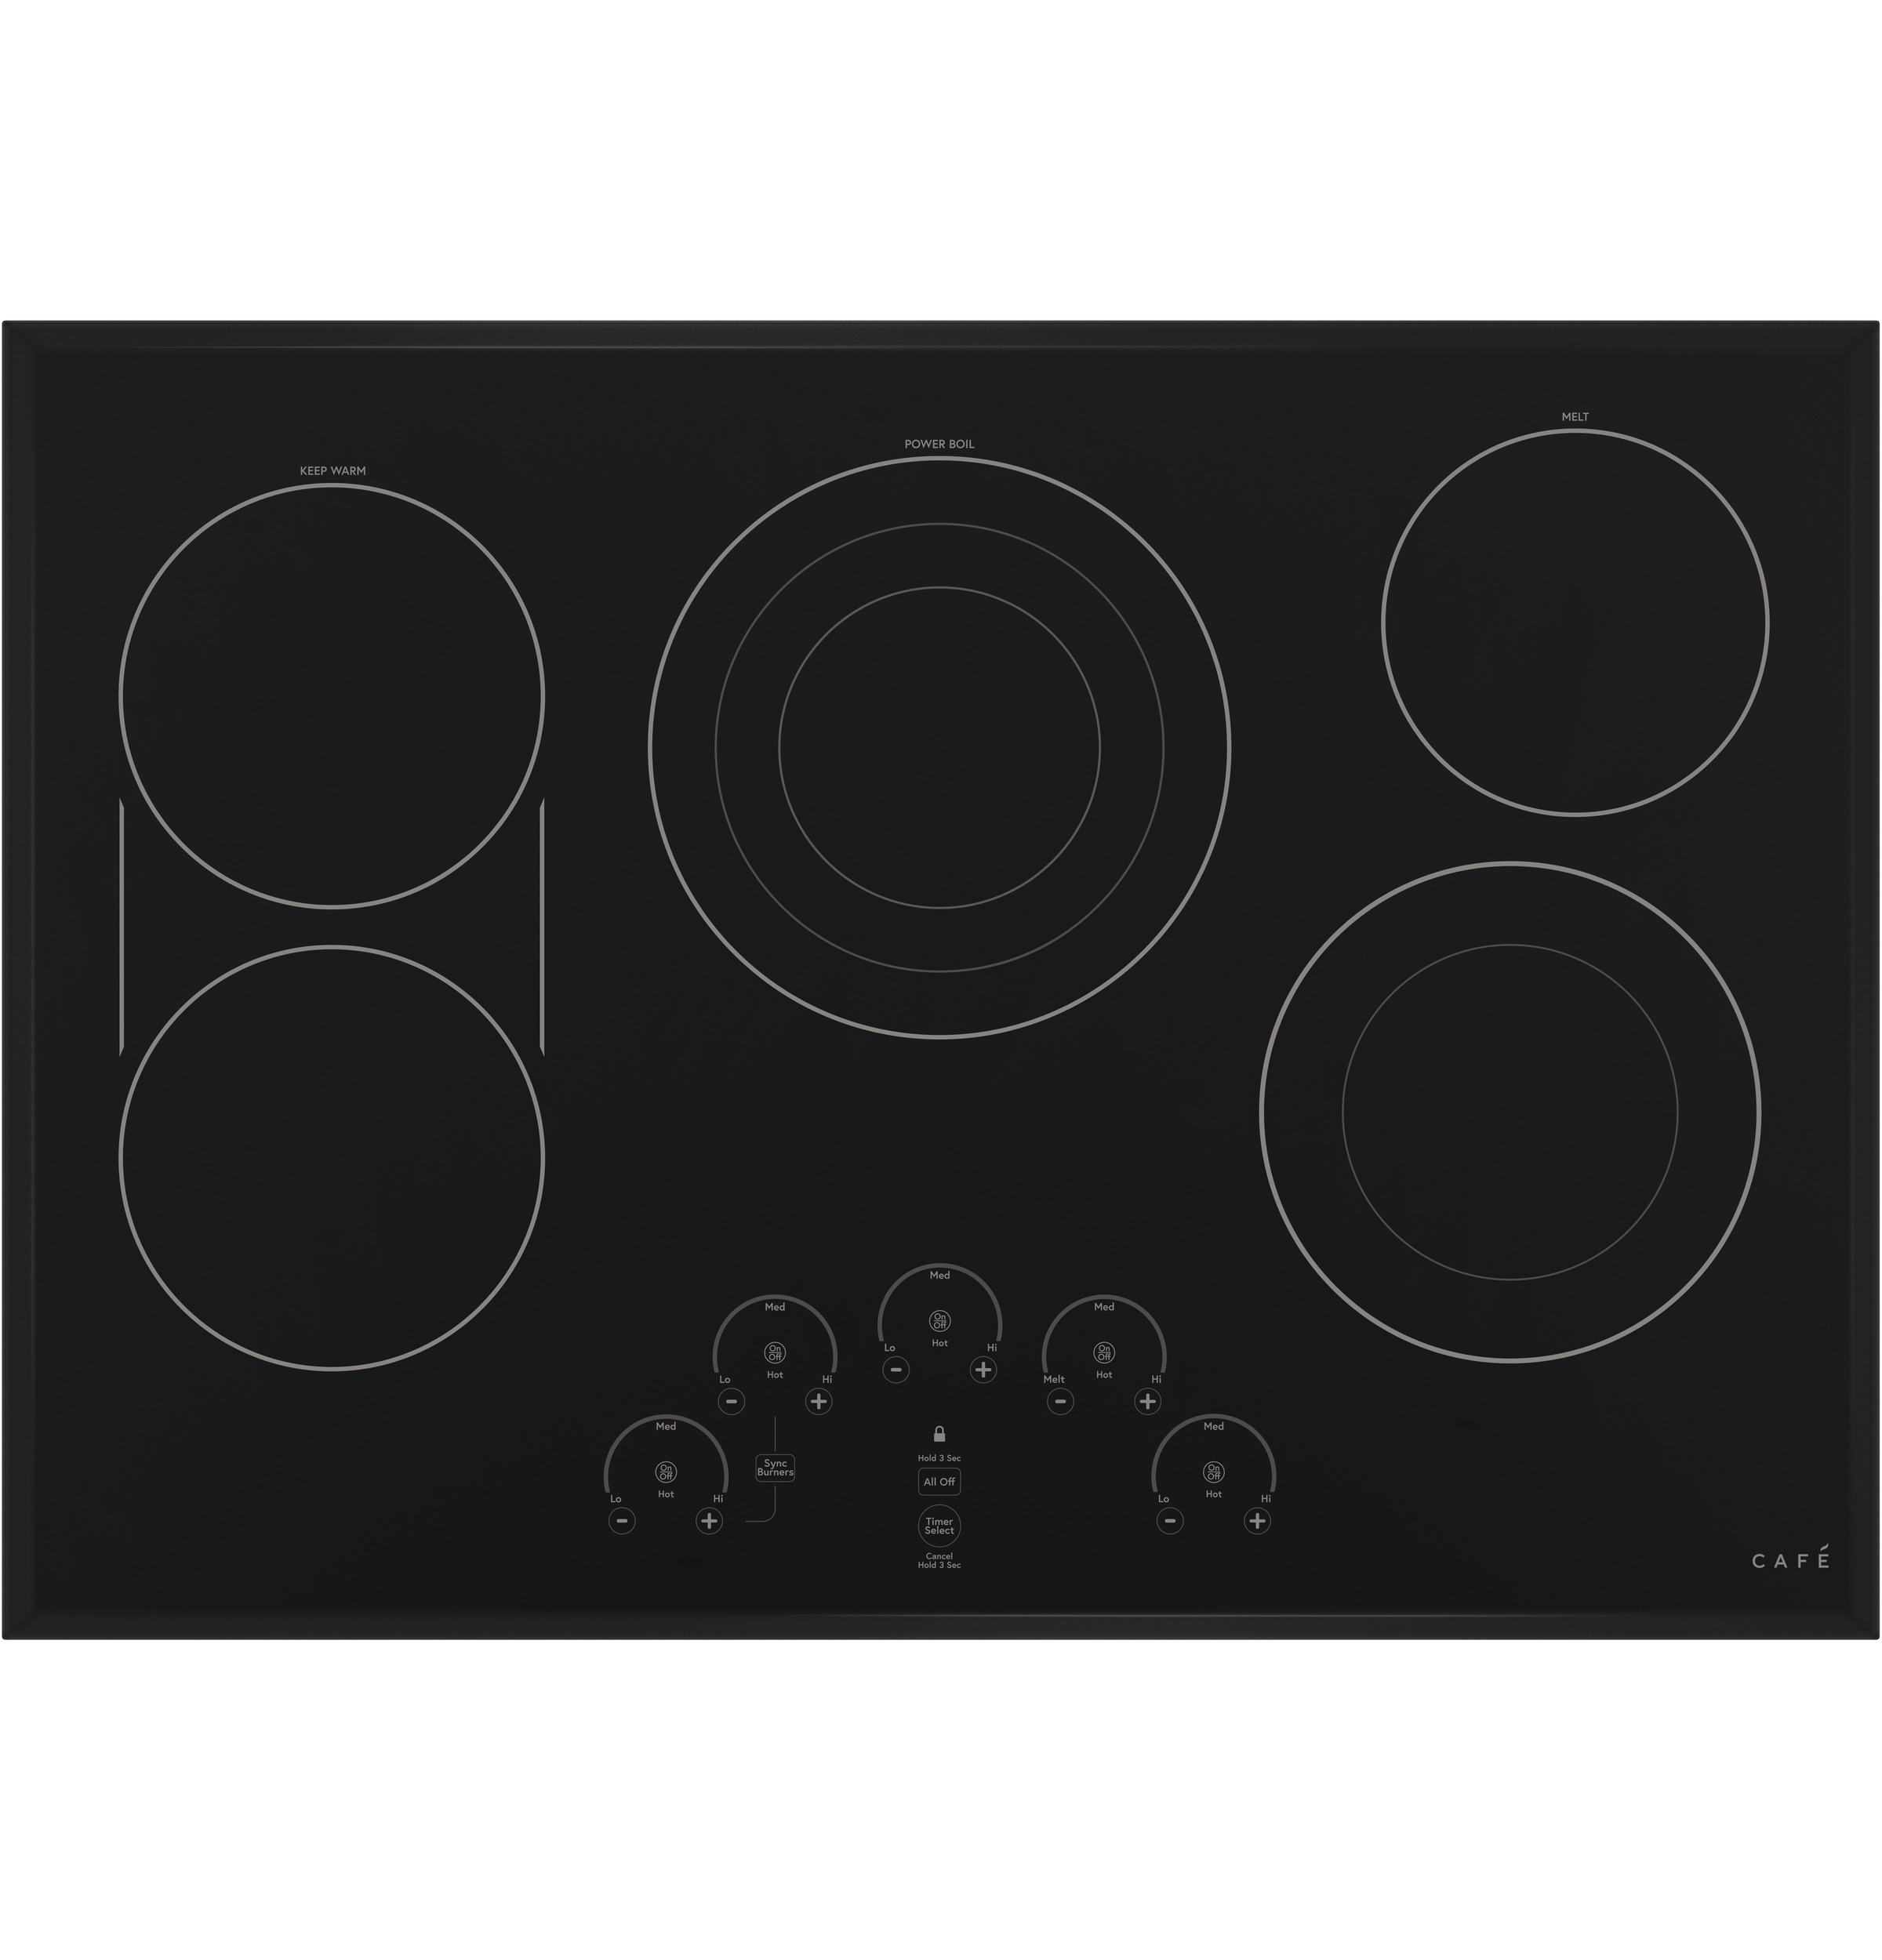 "Cafe Café™ 30"" Touch-Control Electric Cooktop"